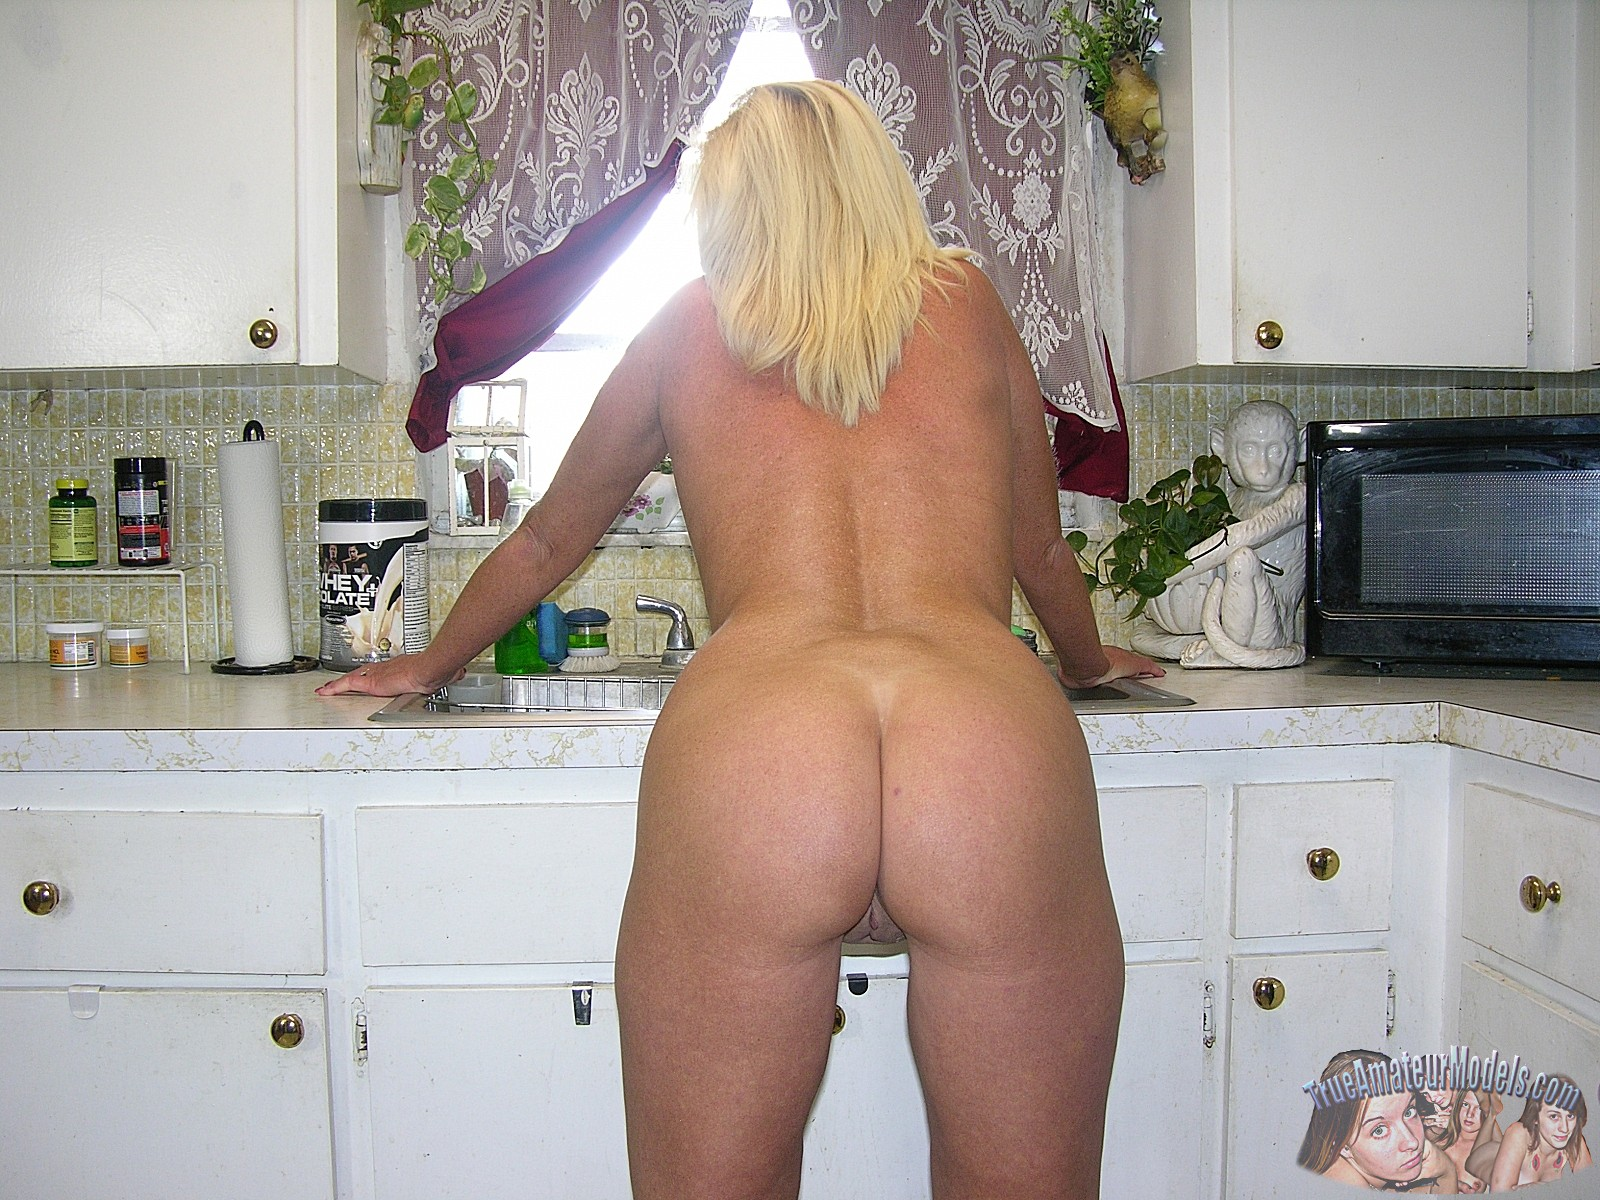 Remarkable, this nude middle aged milf happens. can